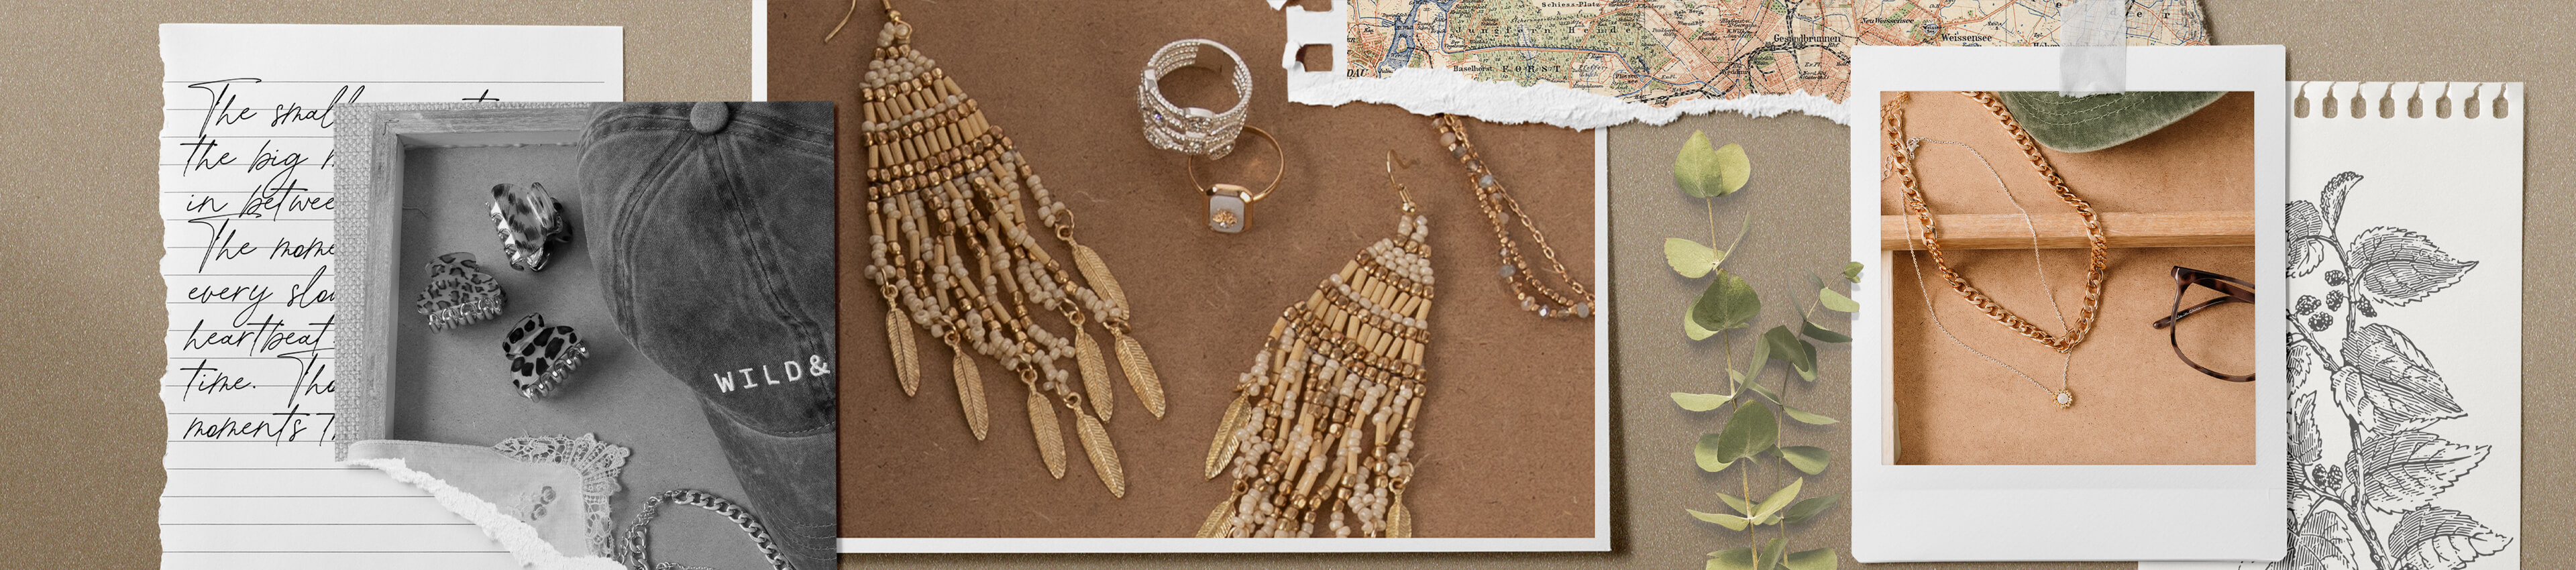 Three hair clips, a baseball hat, a pair of gold beaded earrings, a gold and silver ring, and gold chain necklace and a silver pendant necklace.